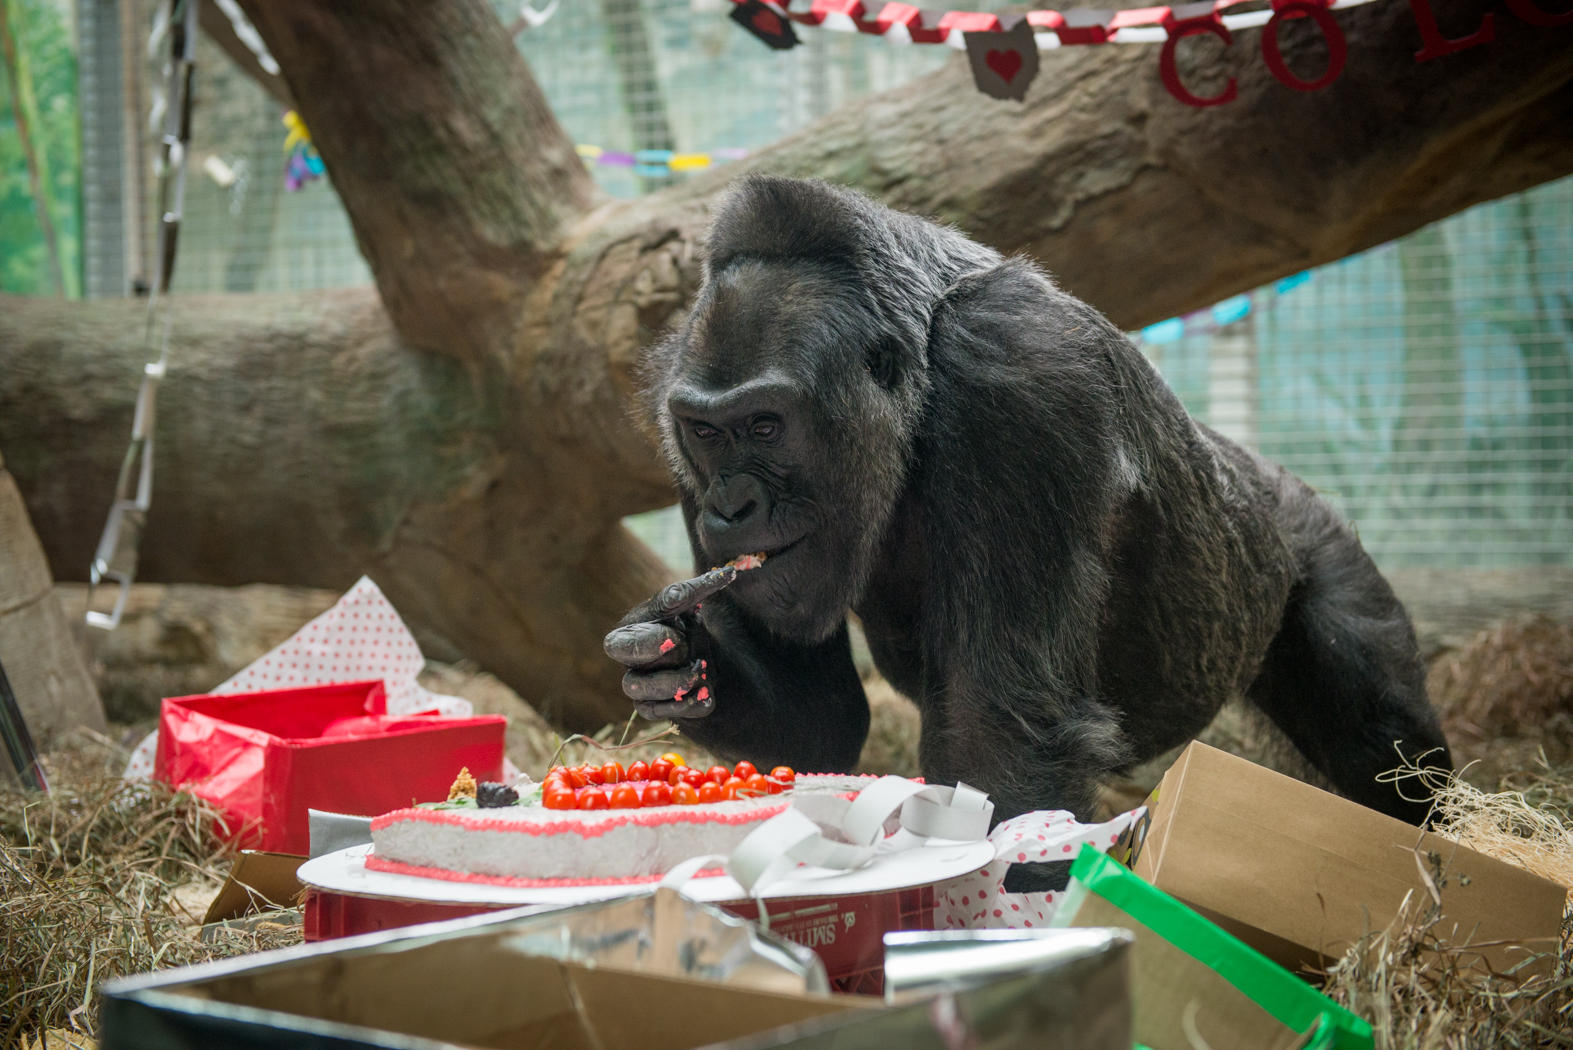 Colo, the world's oldest zoo gorilla, dies at 60